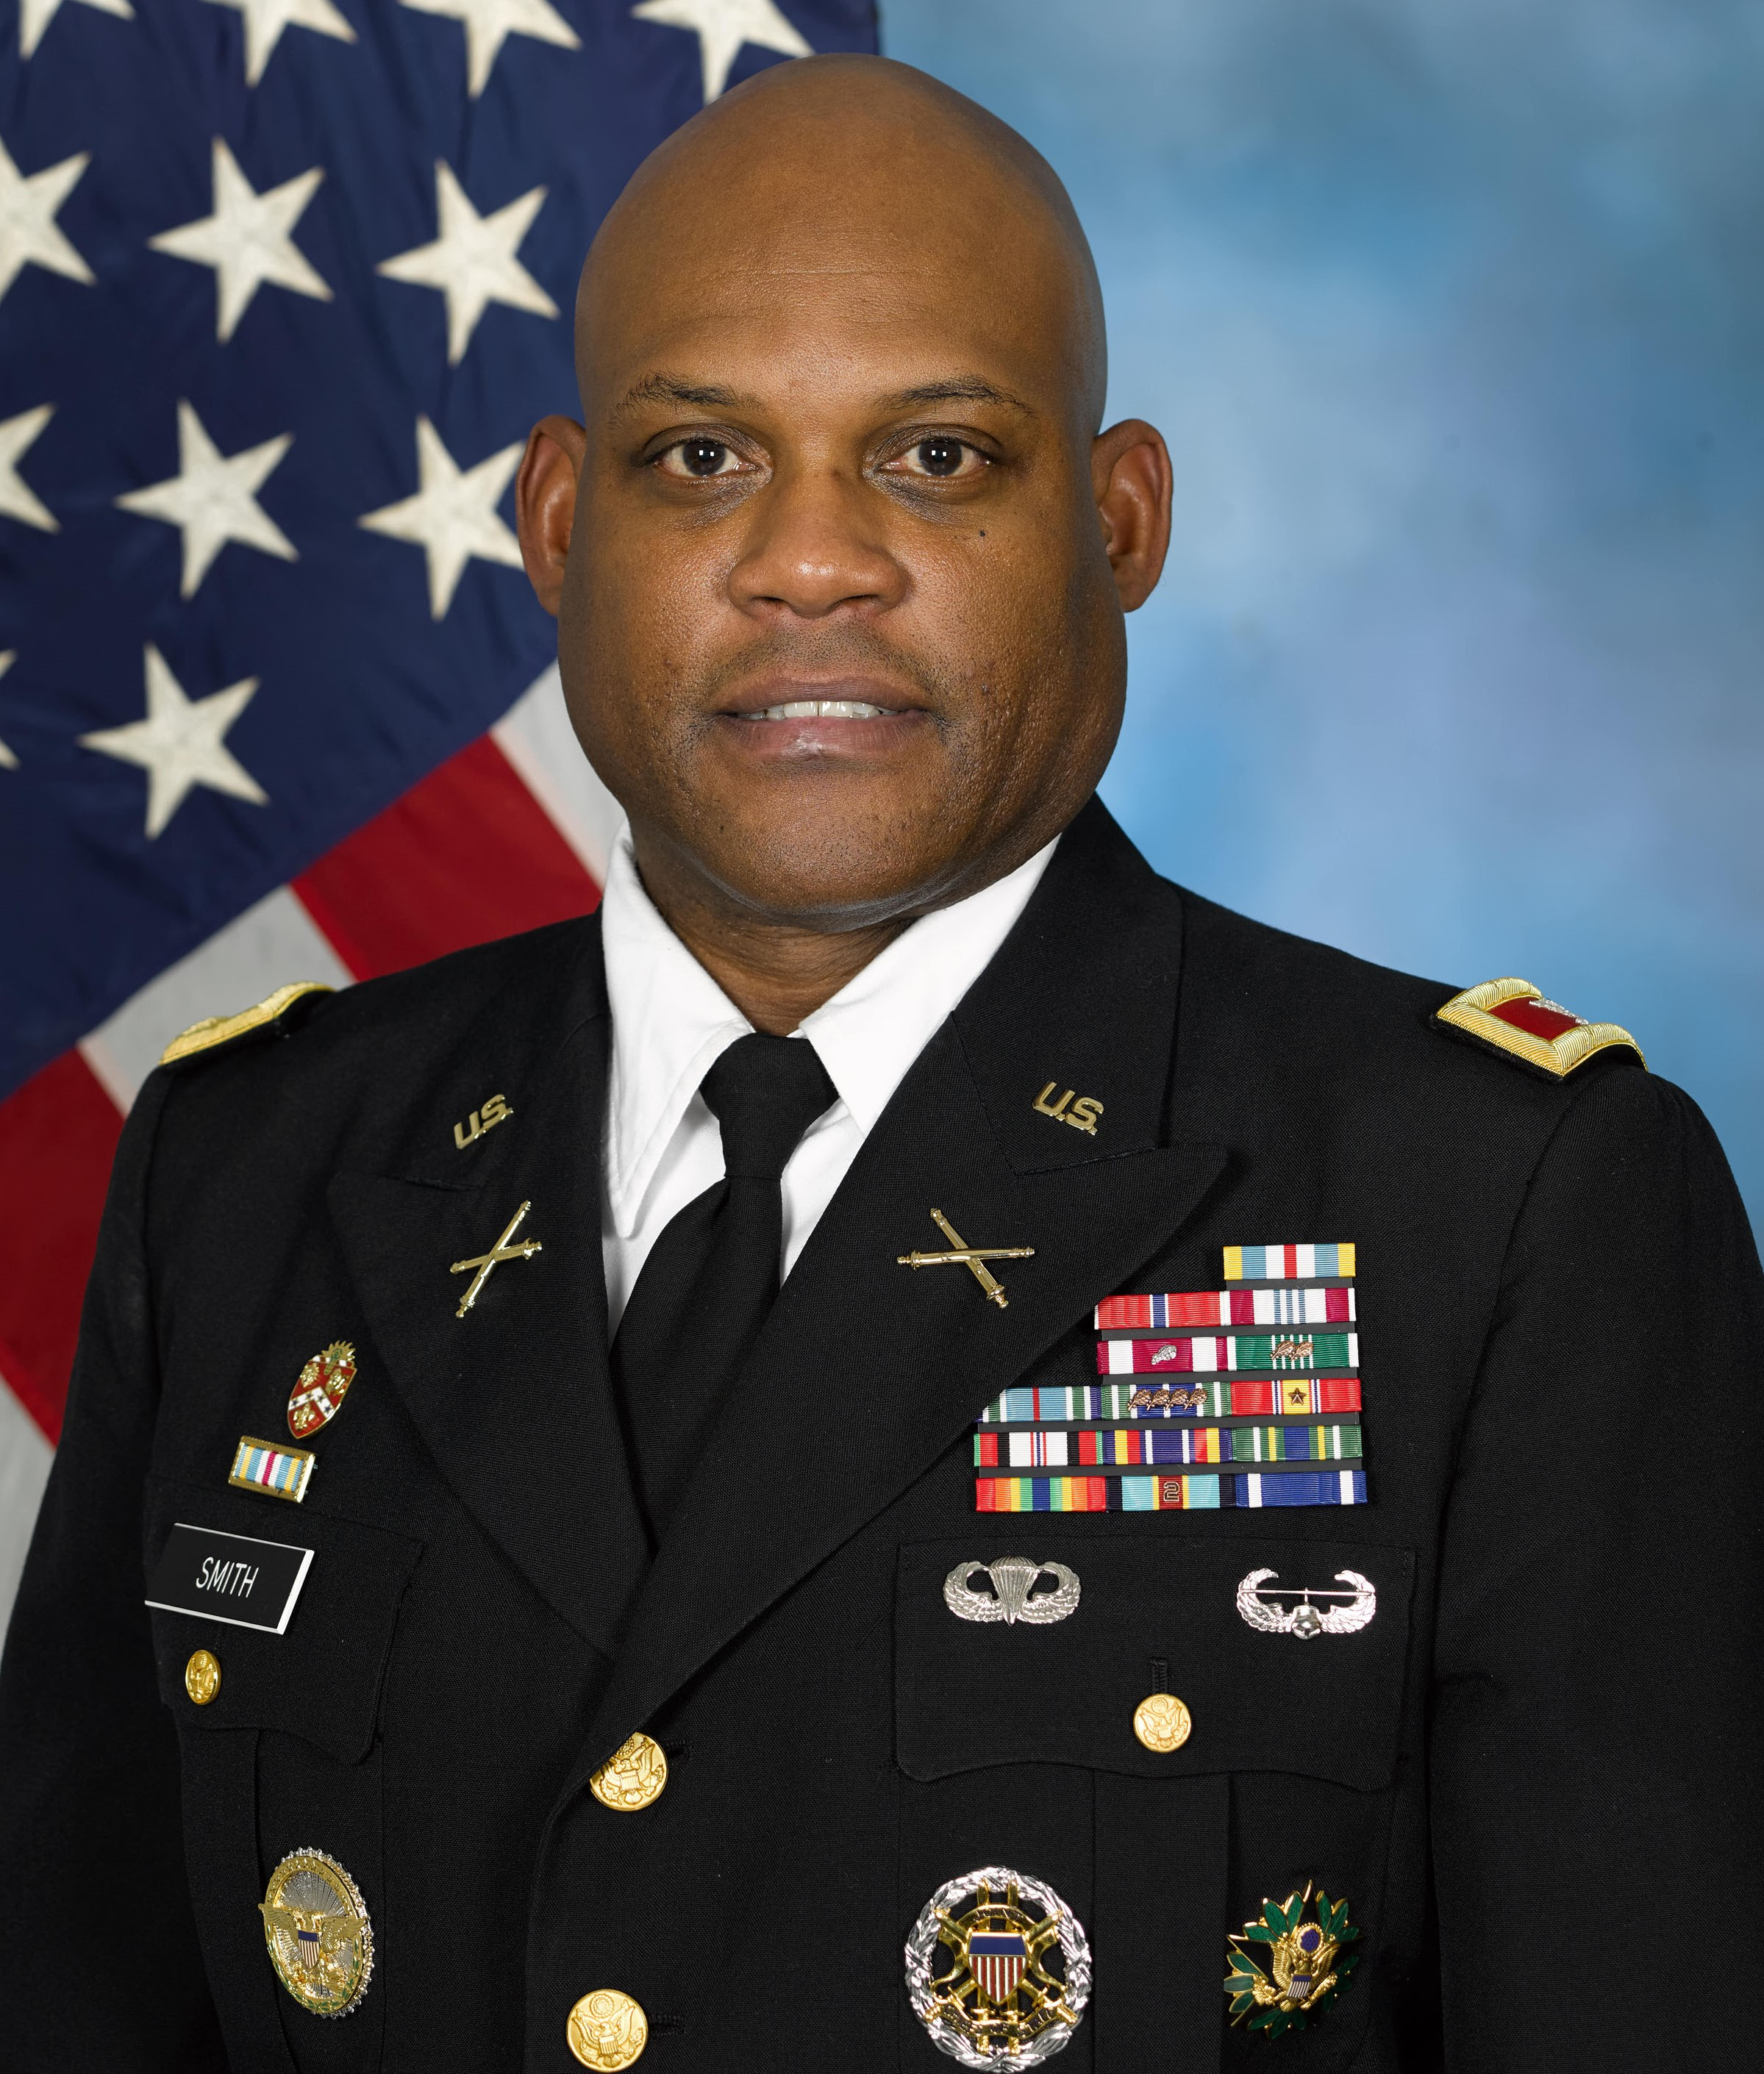 COL Gregory K. Smith